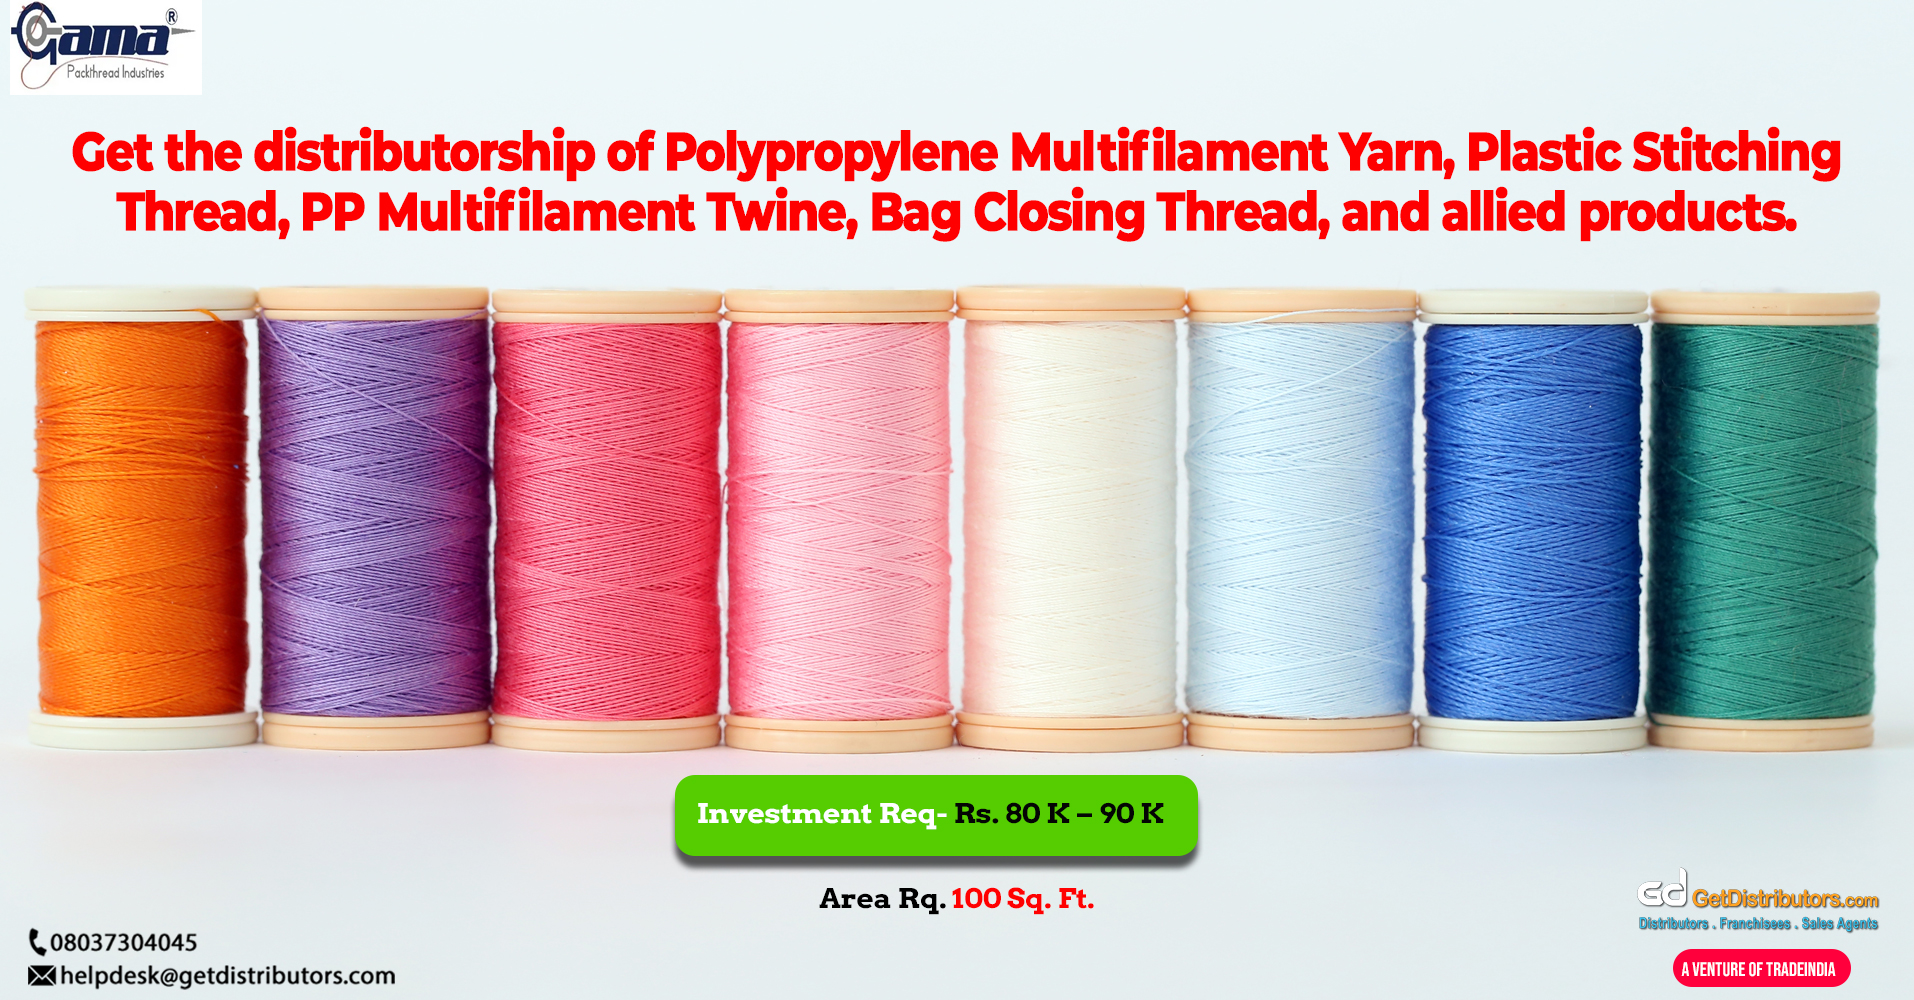 Superior quality Polypropylene Multifilament Yarn, Plastic Stitching Thread, and allied products for distribution